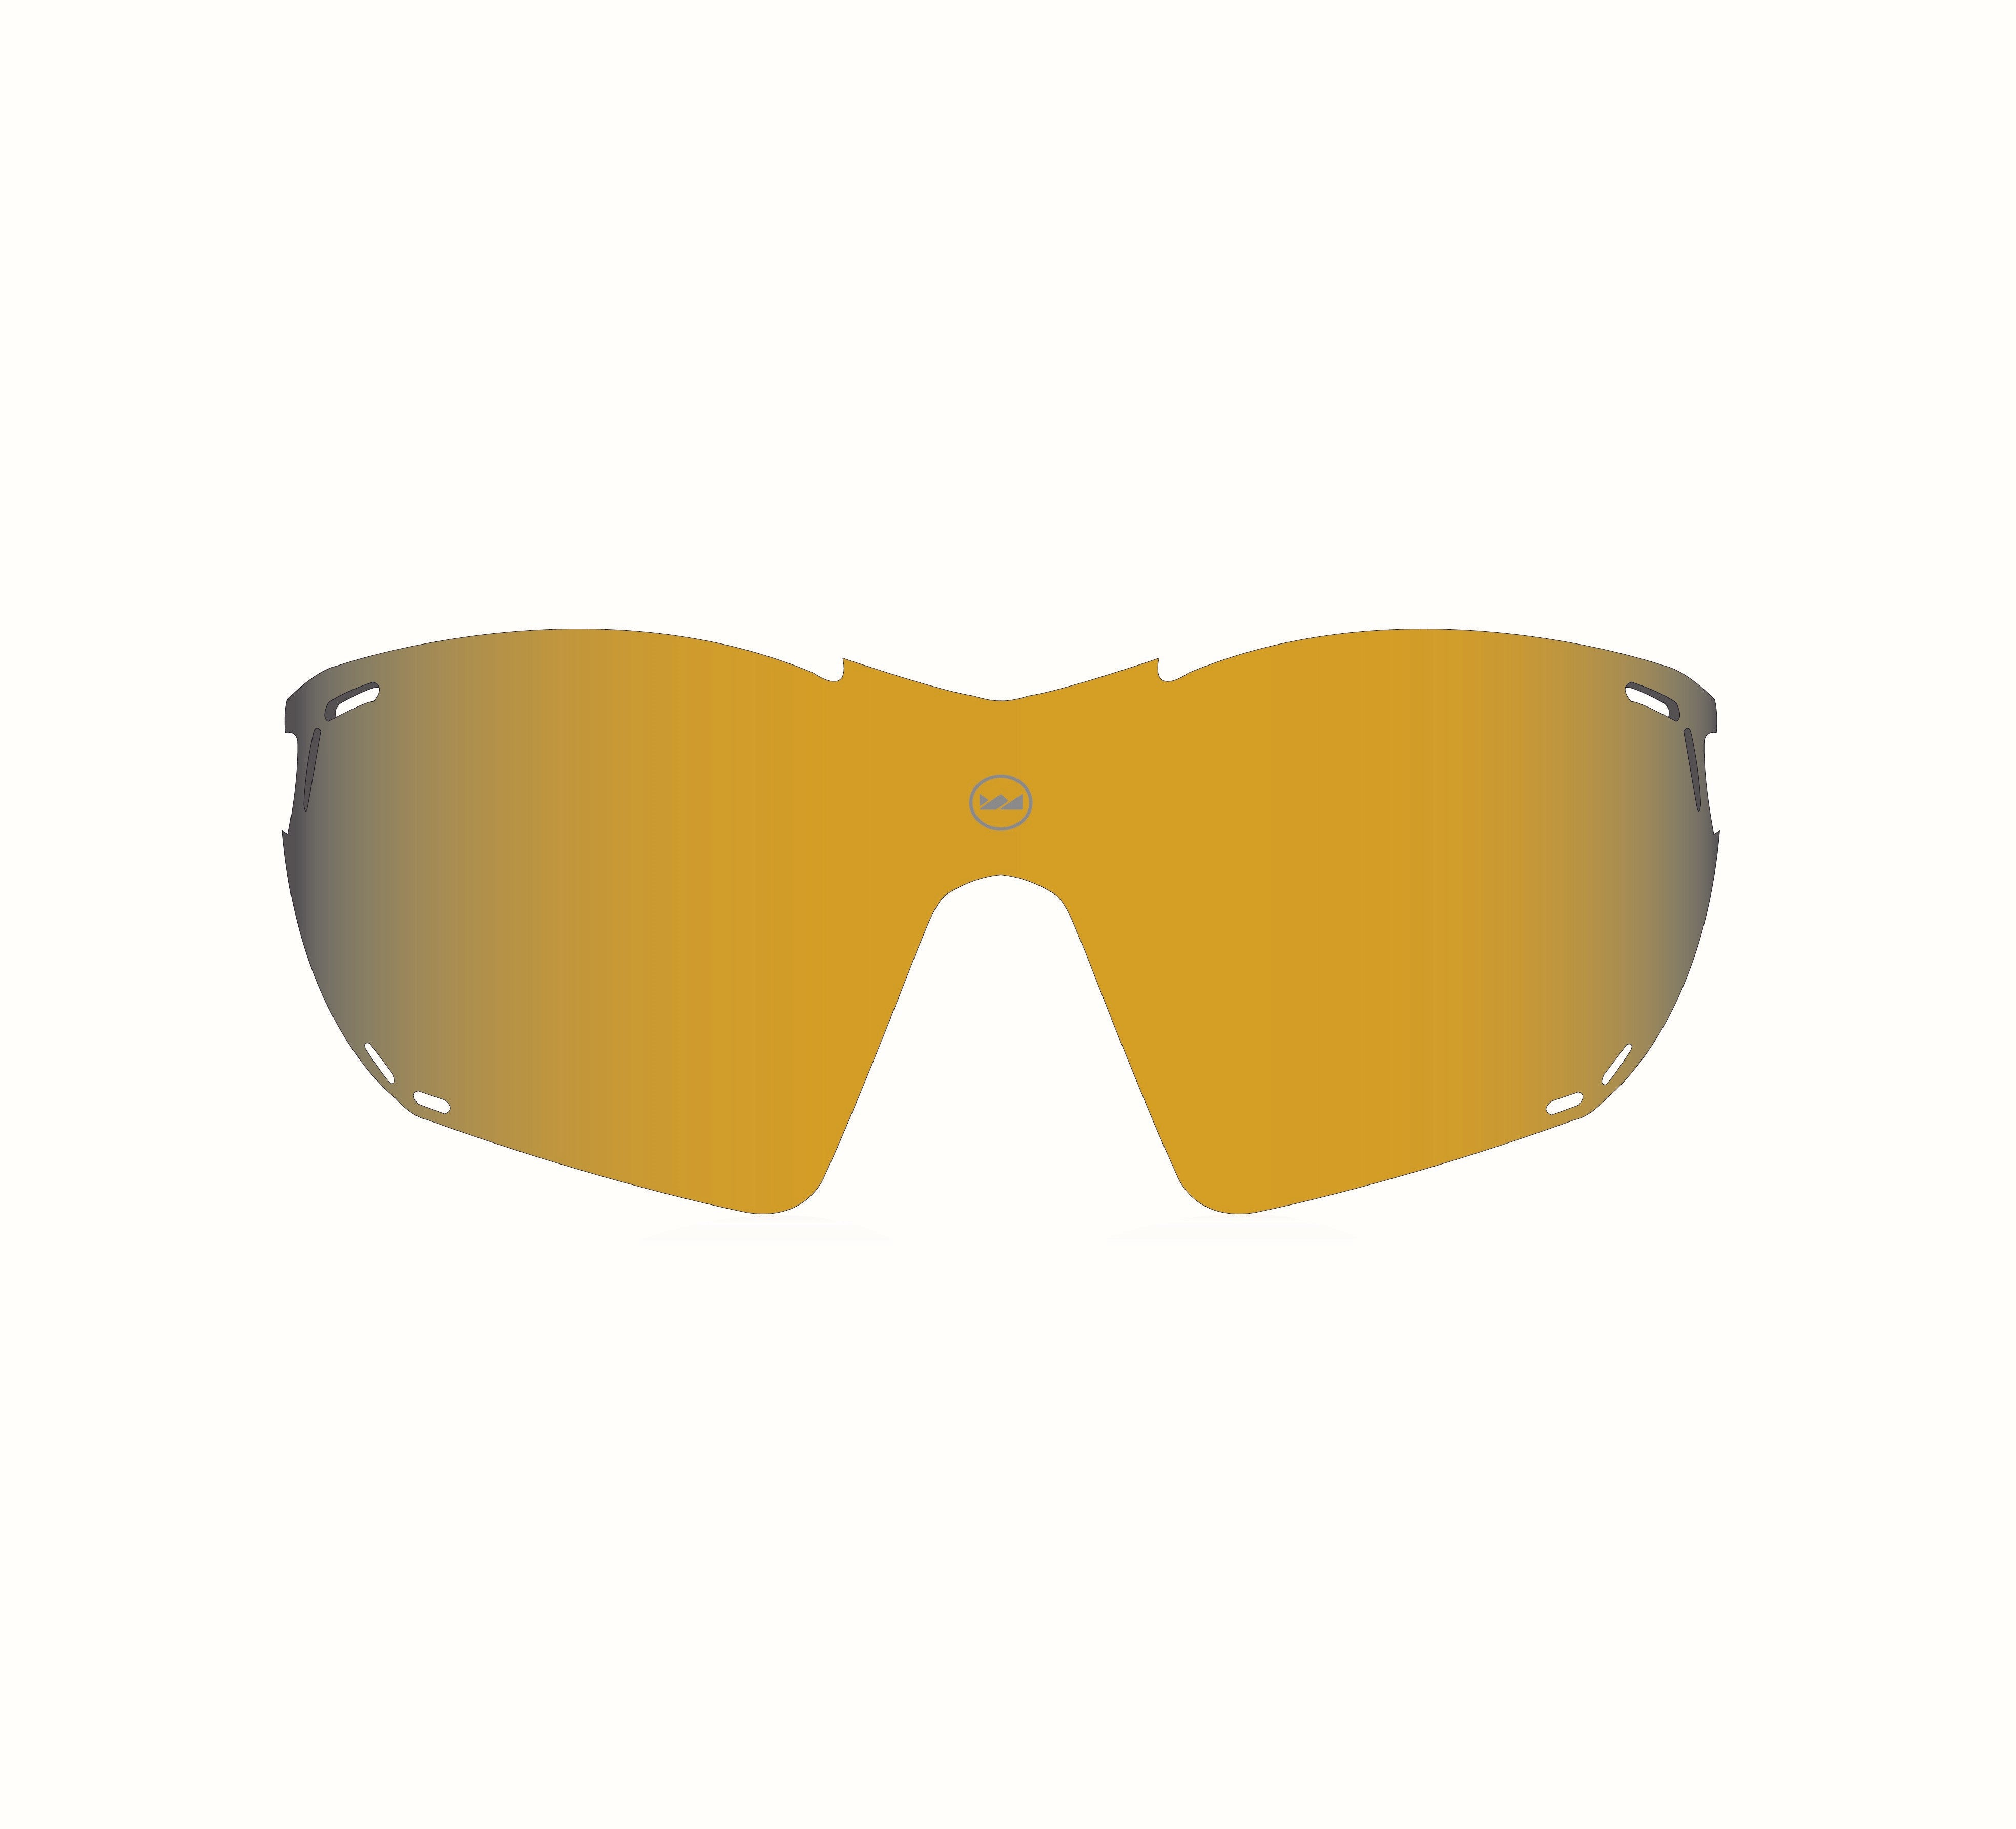 YELLOW POLARIZED LENSES